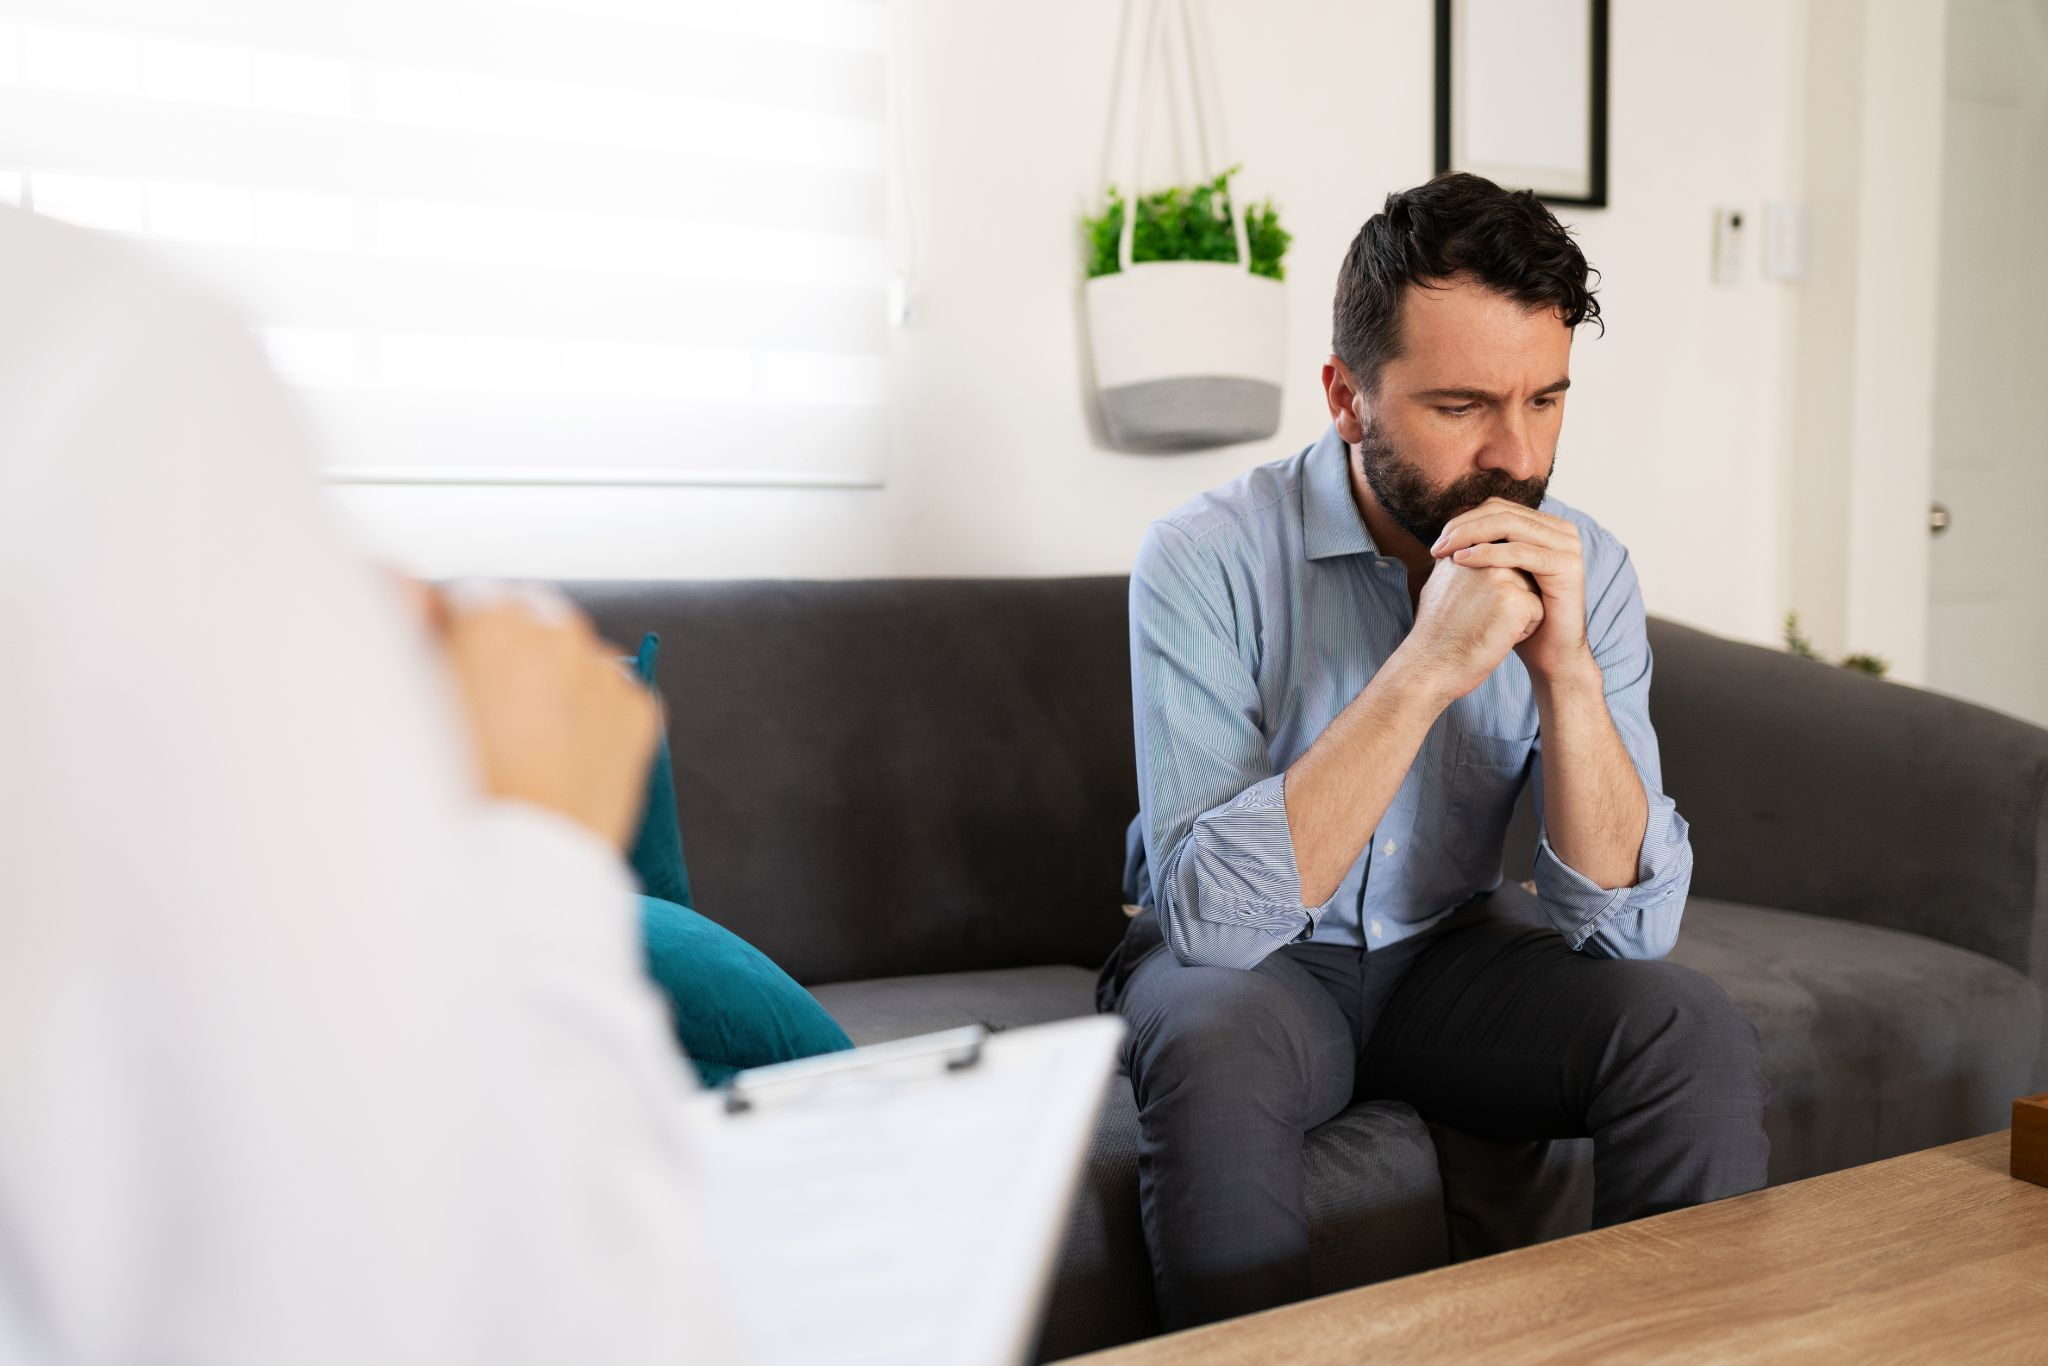 Hispanic man with depression and anxiety listening to the professional advice of his female psychiatrist